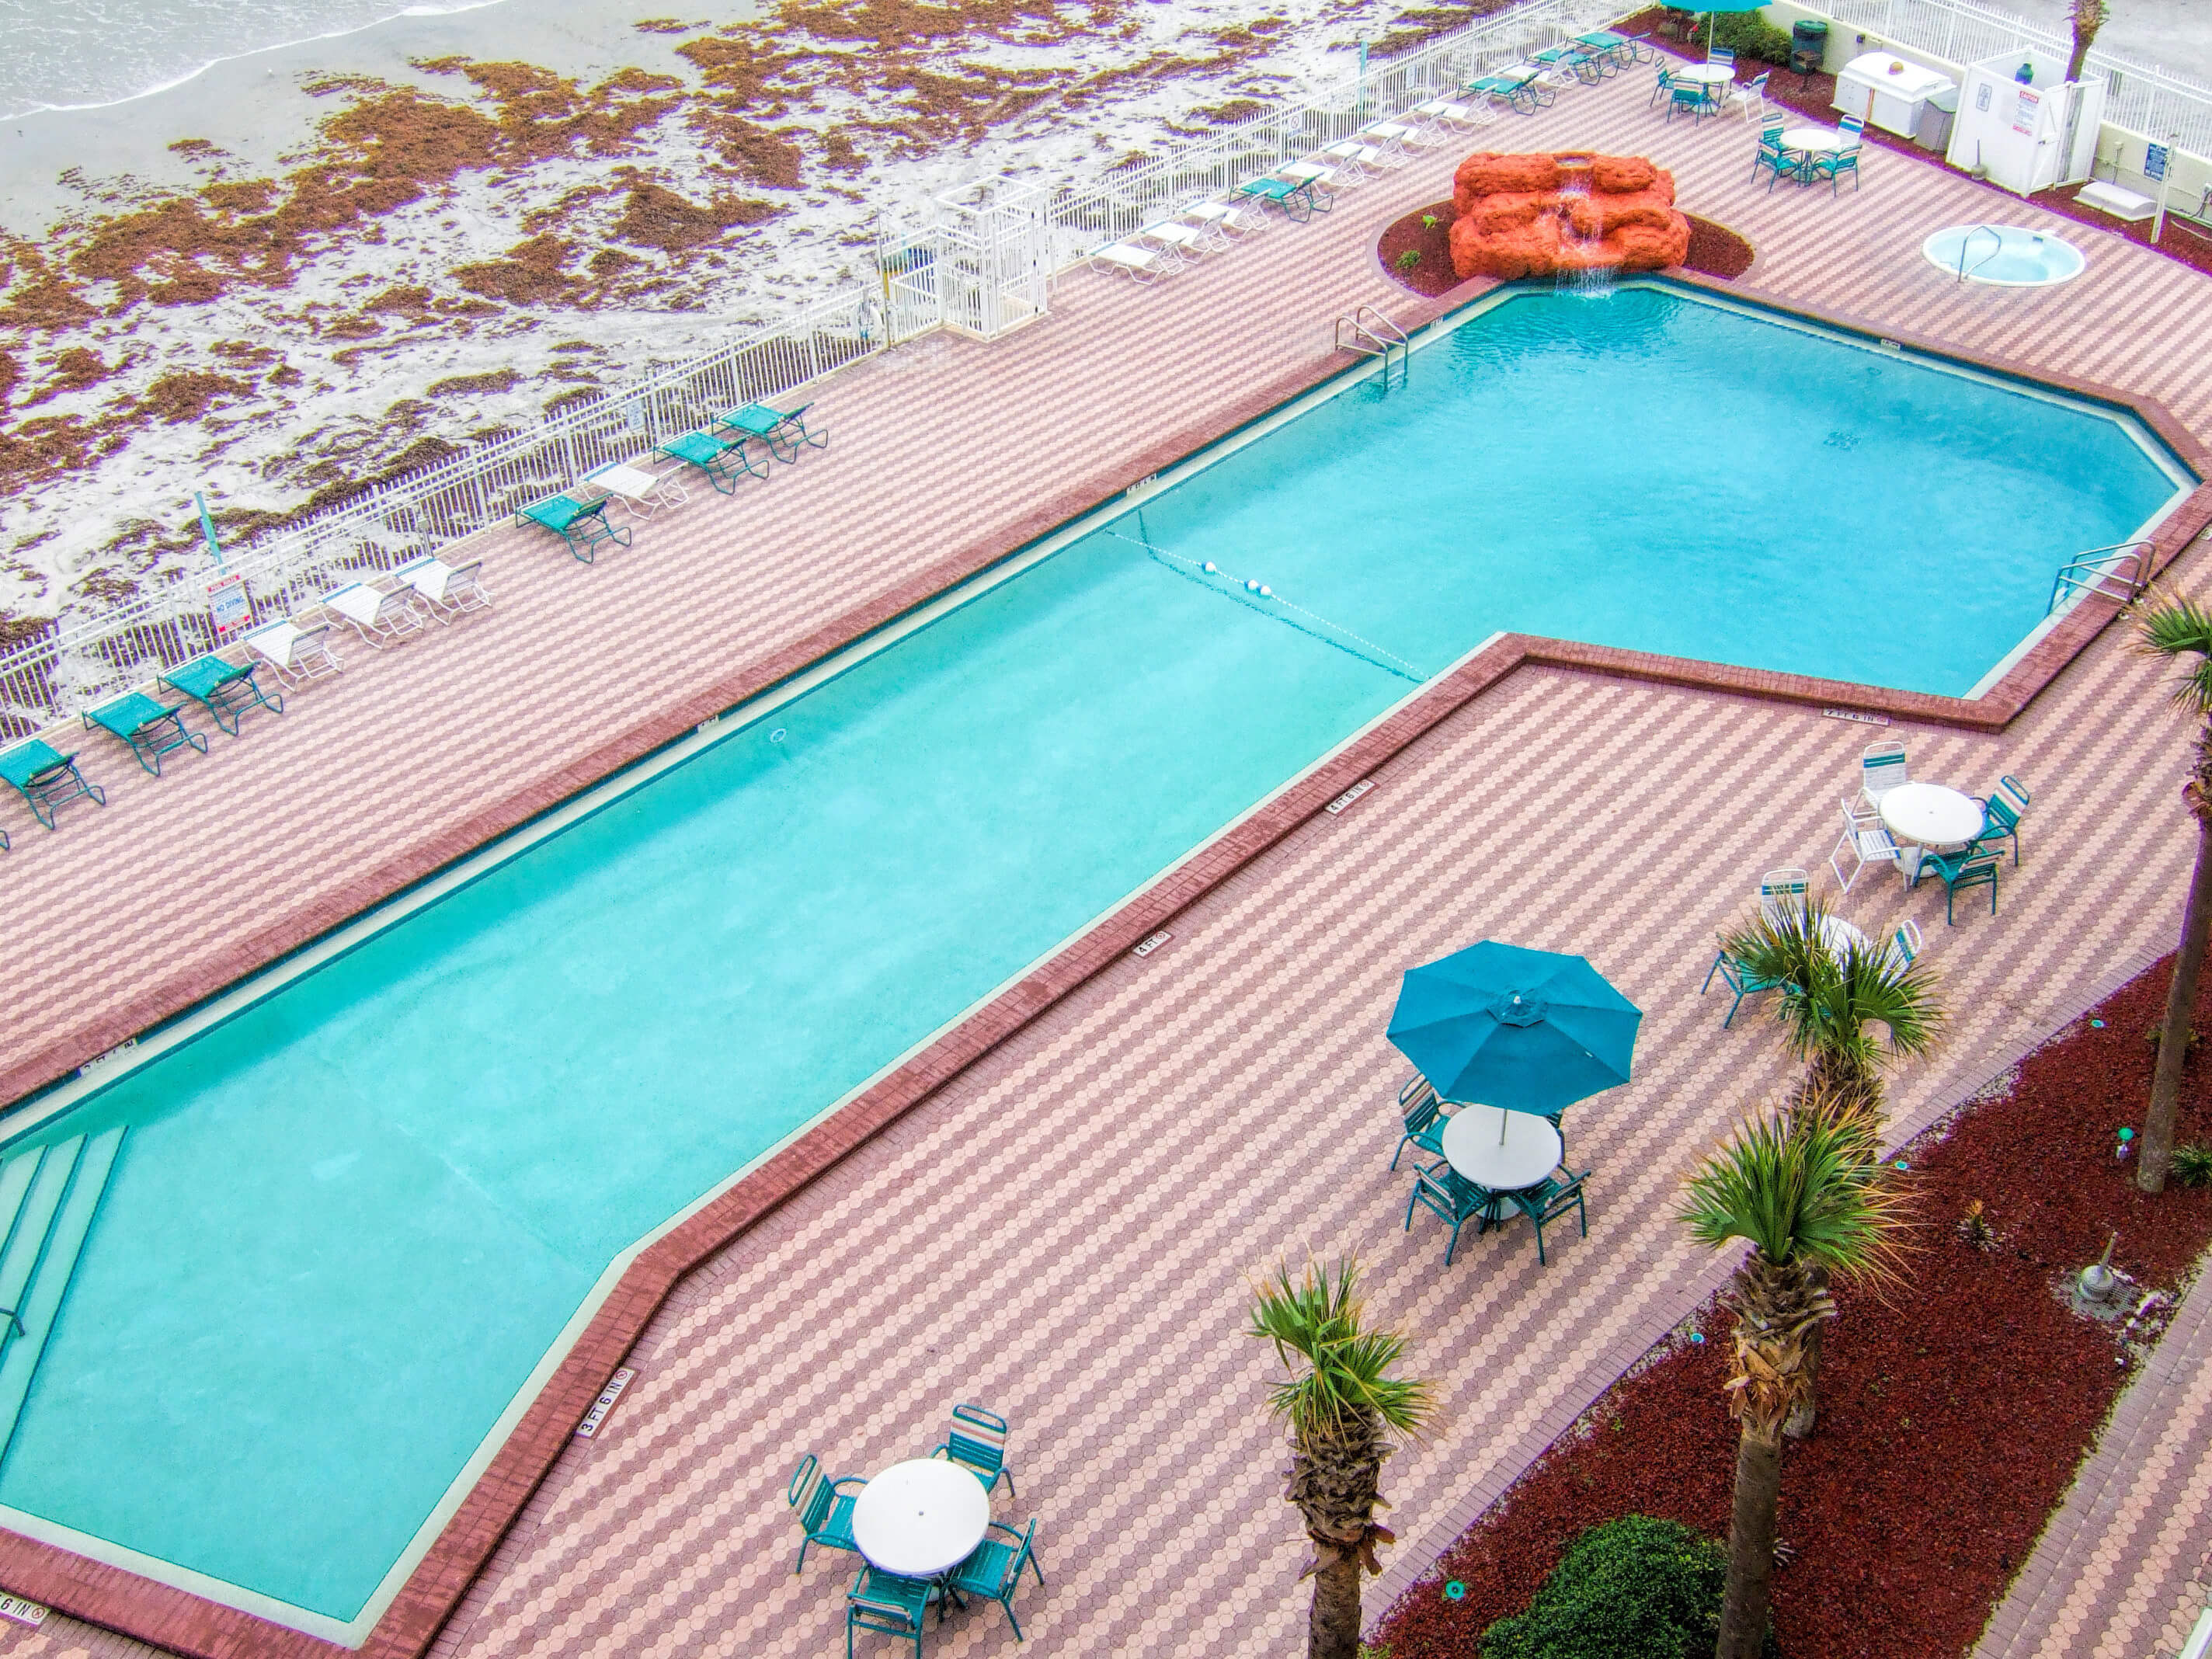 Heated outdoor pool overlooking the Atlantic Ocean | Harbour Beach Resort | Westgate Resorts in Daytona Beach FL